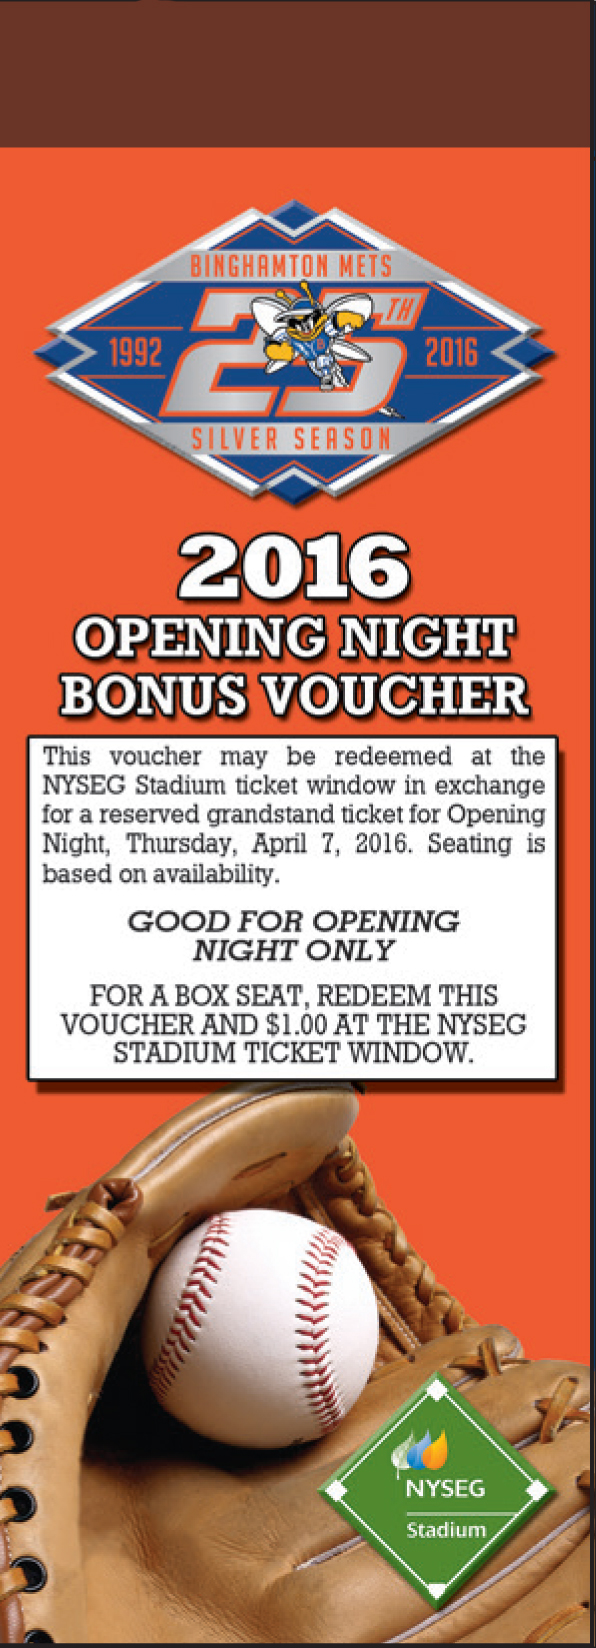 2014 Opening Day Bonus Voucher